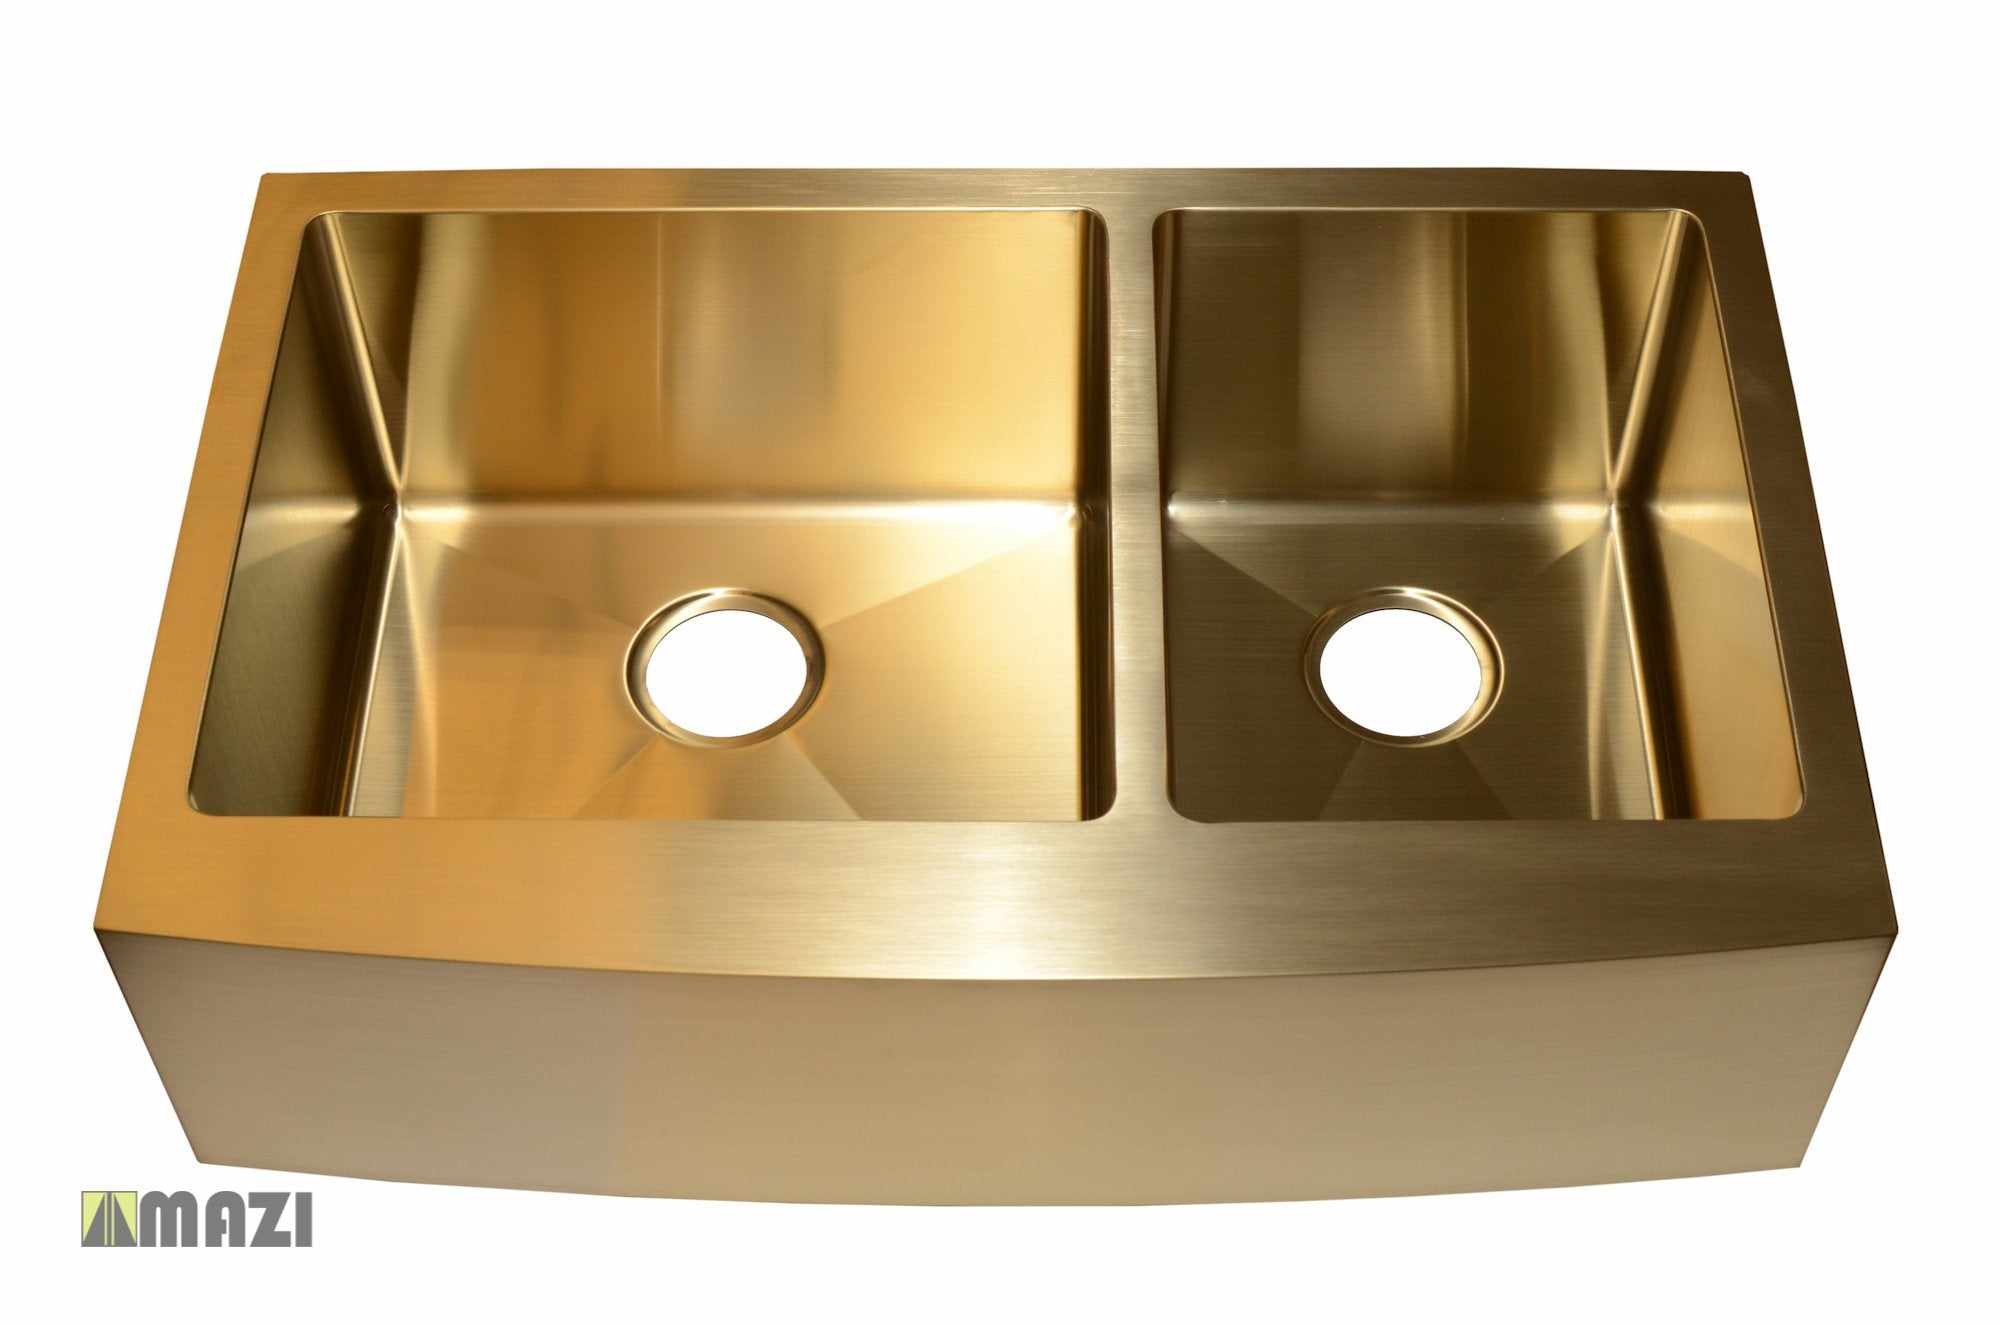 Stainless Steel Handmade Color Kitchen Sink Ac2002 Gold